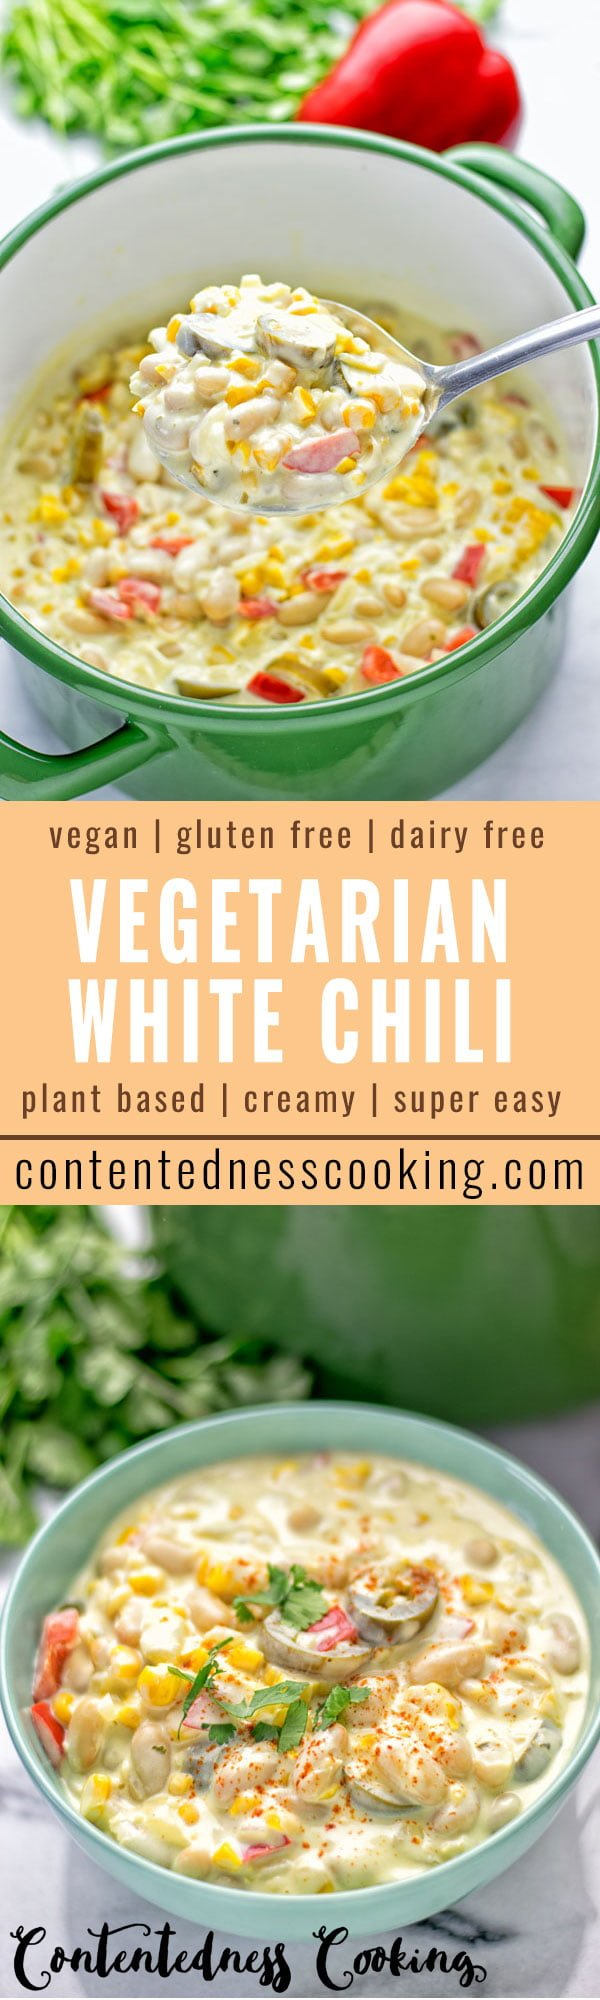 Vegetarian White Chili | #vegan #glutenfree #contentednesscooking